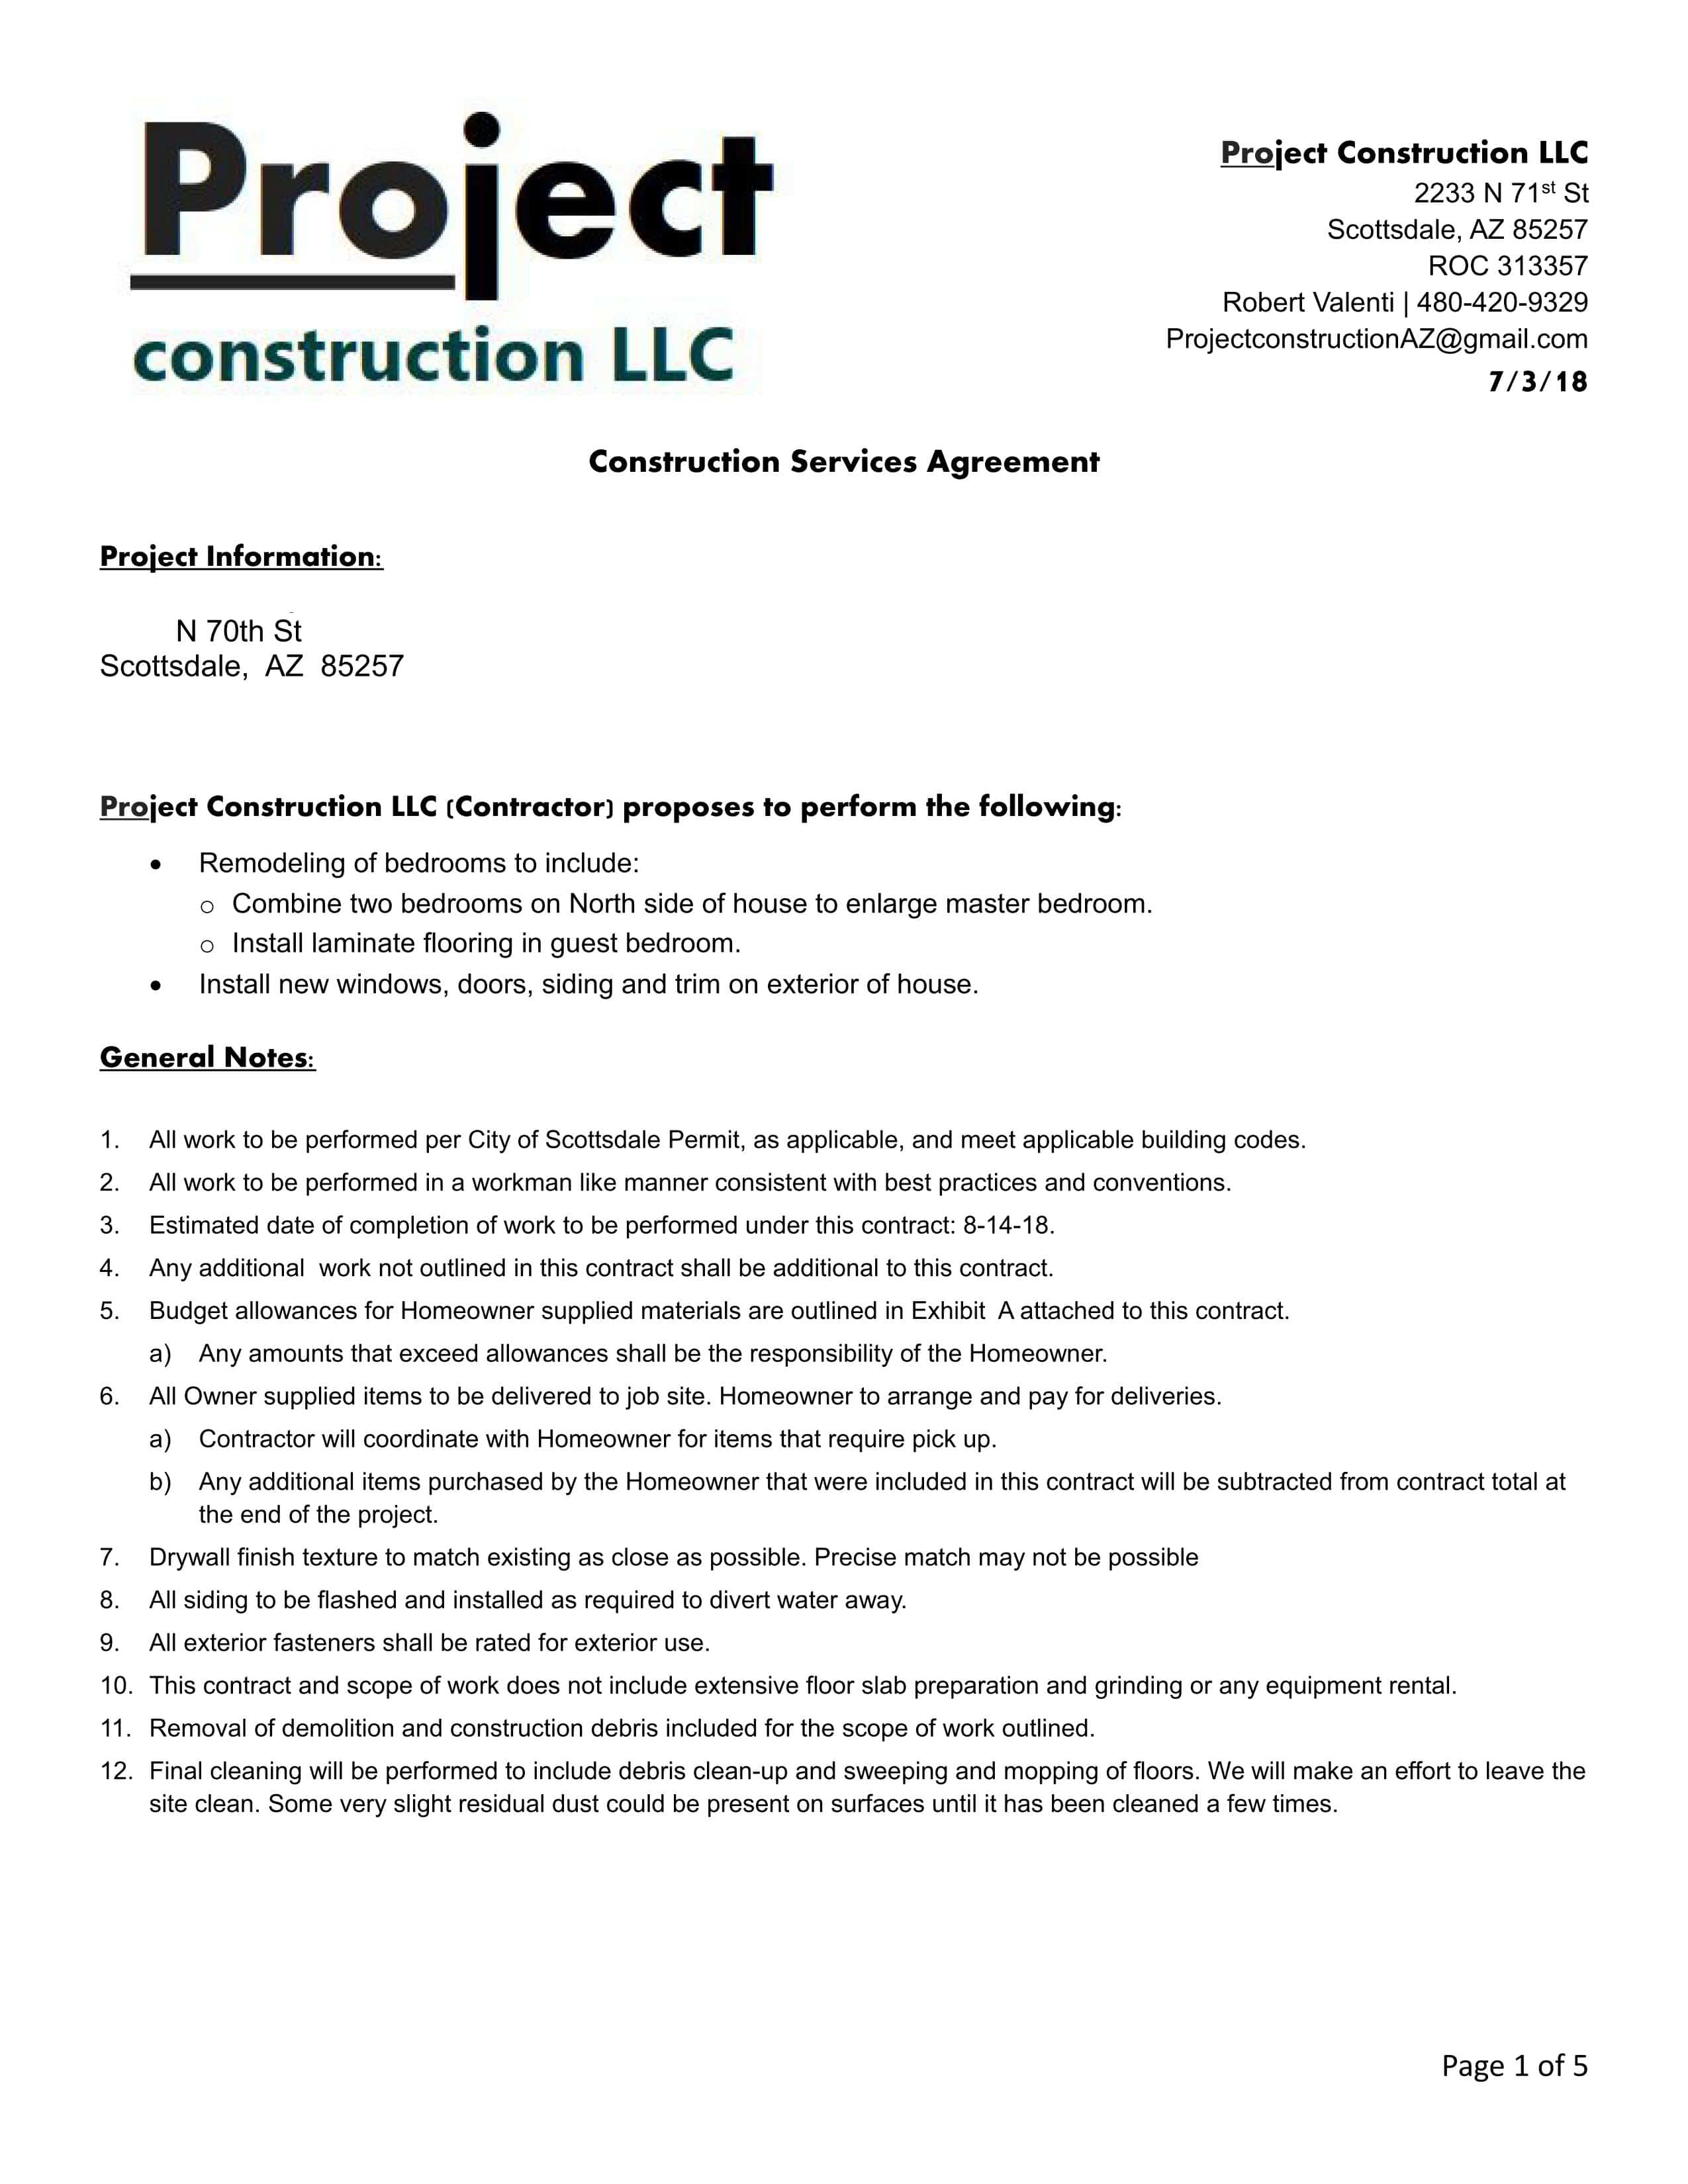 example of project contract